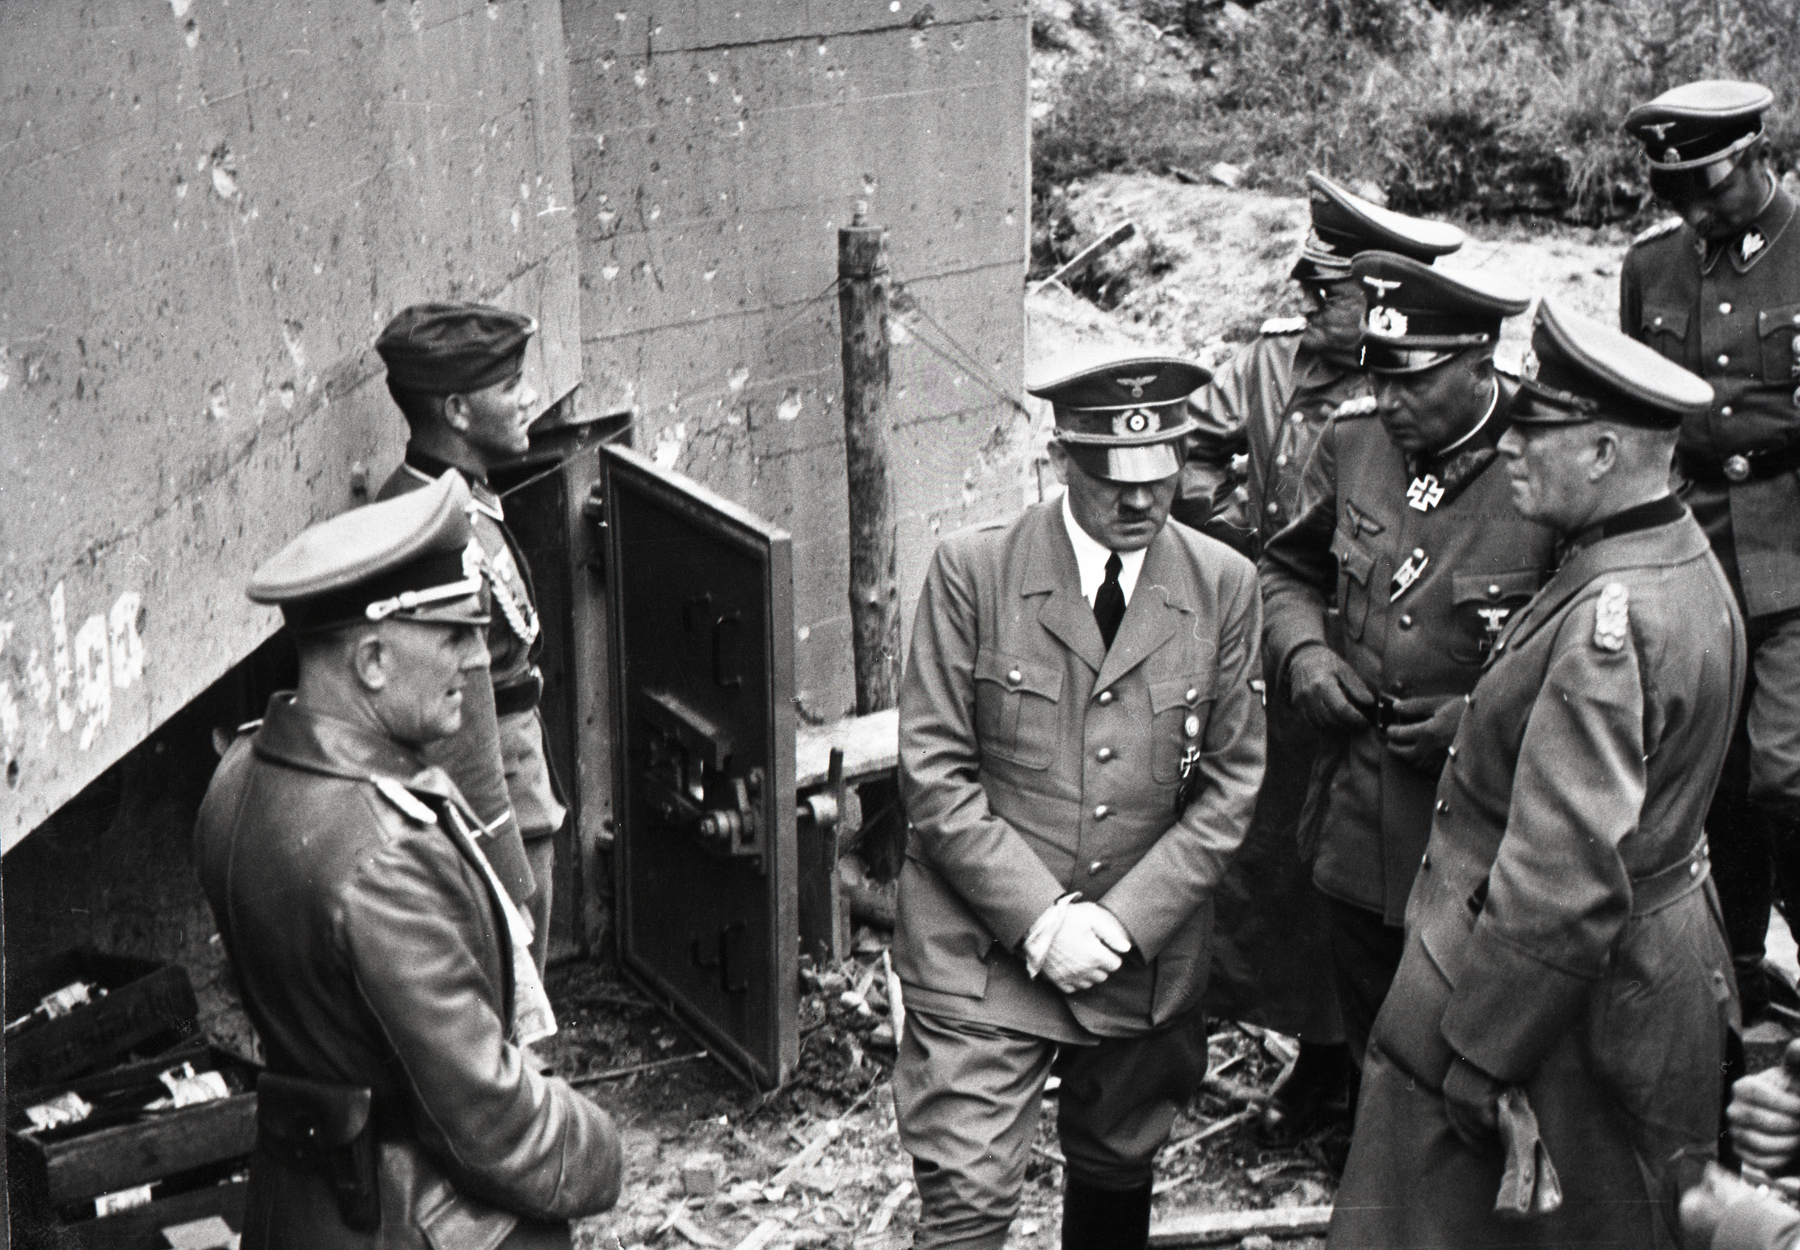 Adolf Hitler visits a German bunker from WWI, from Eva Braun's albums